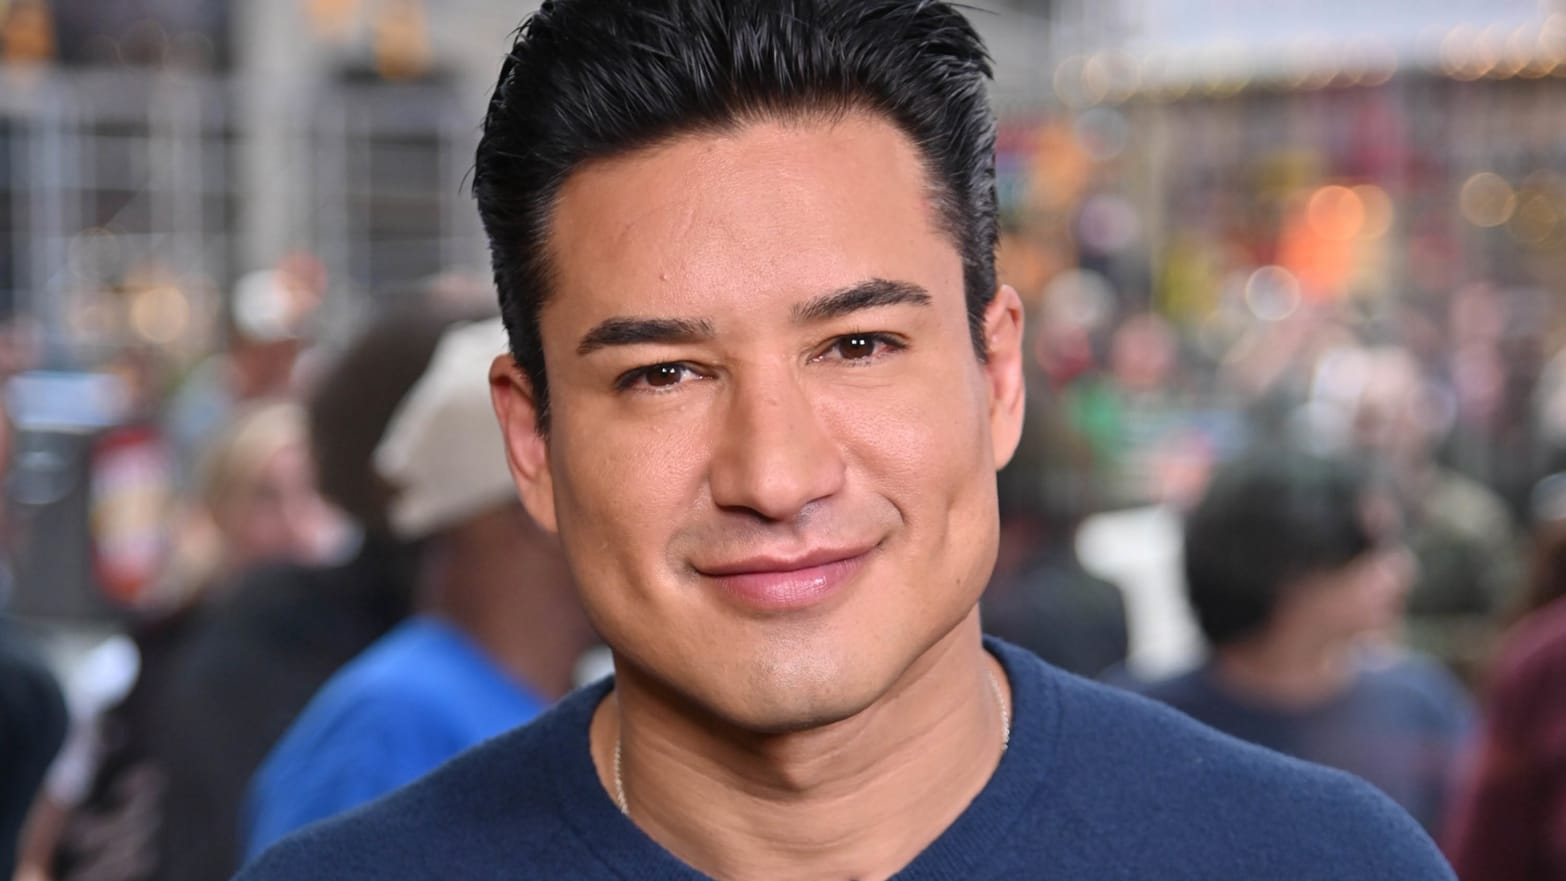 No Mario Lopez Supporting Trans Children Is Not Dangerous